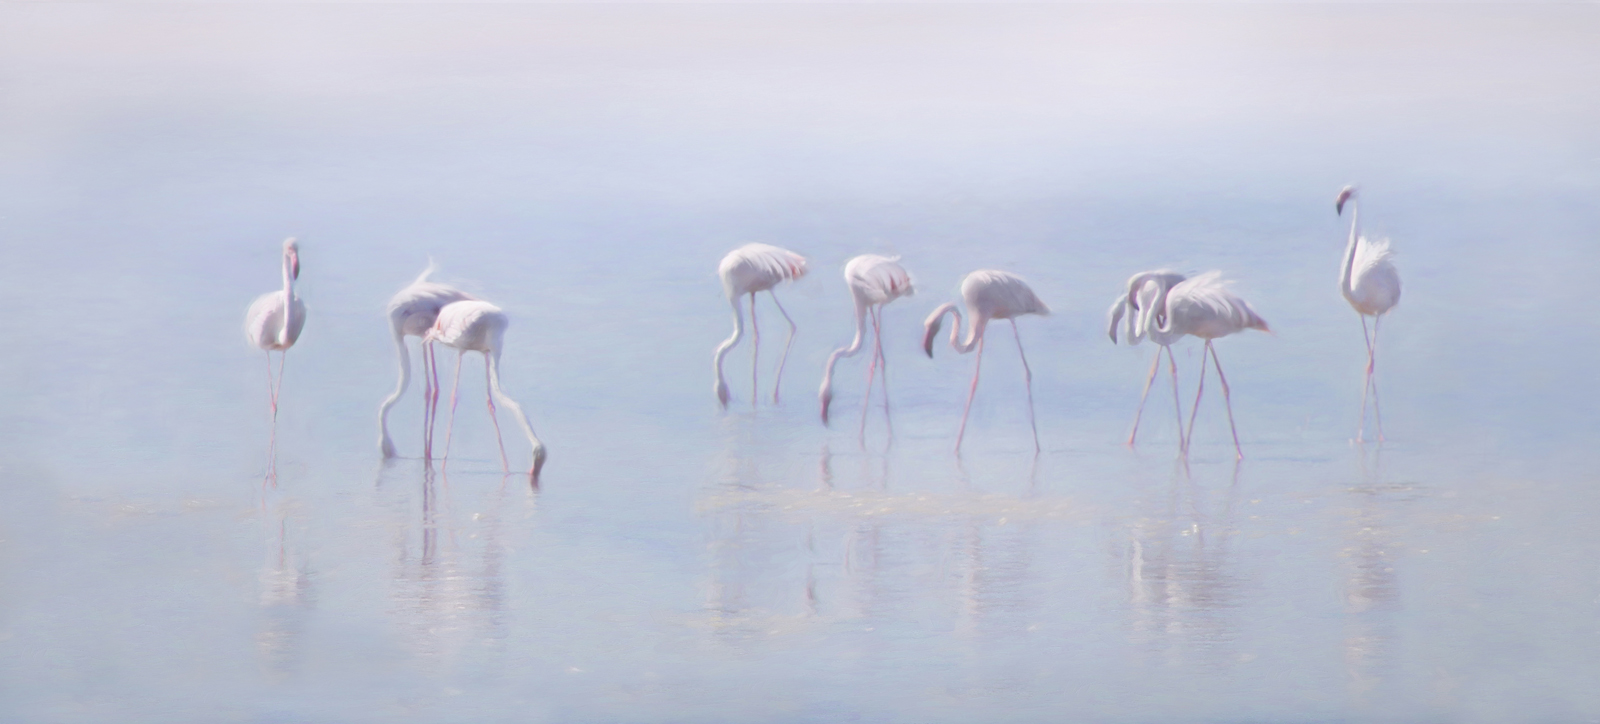 misty flamingos